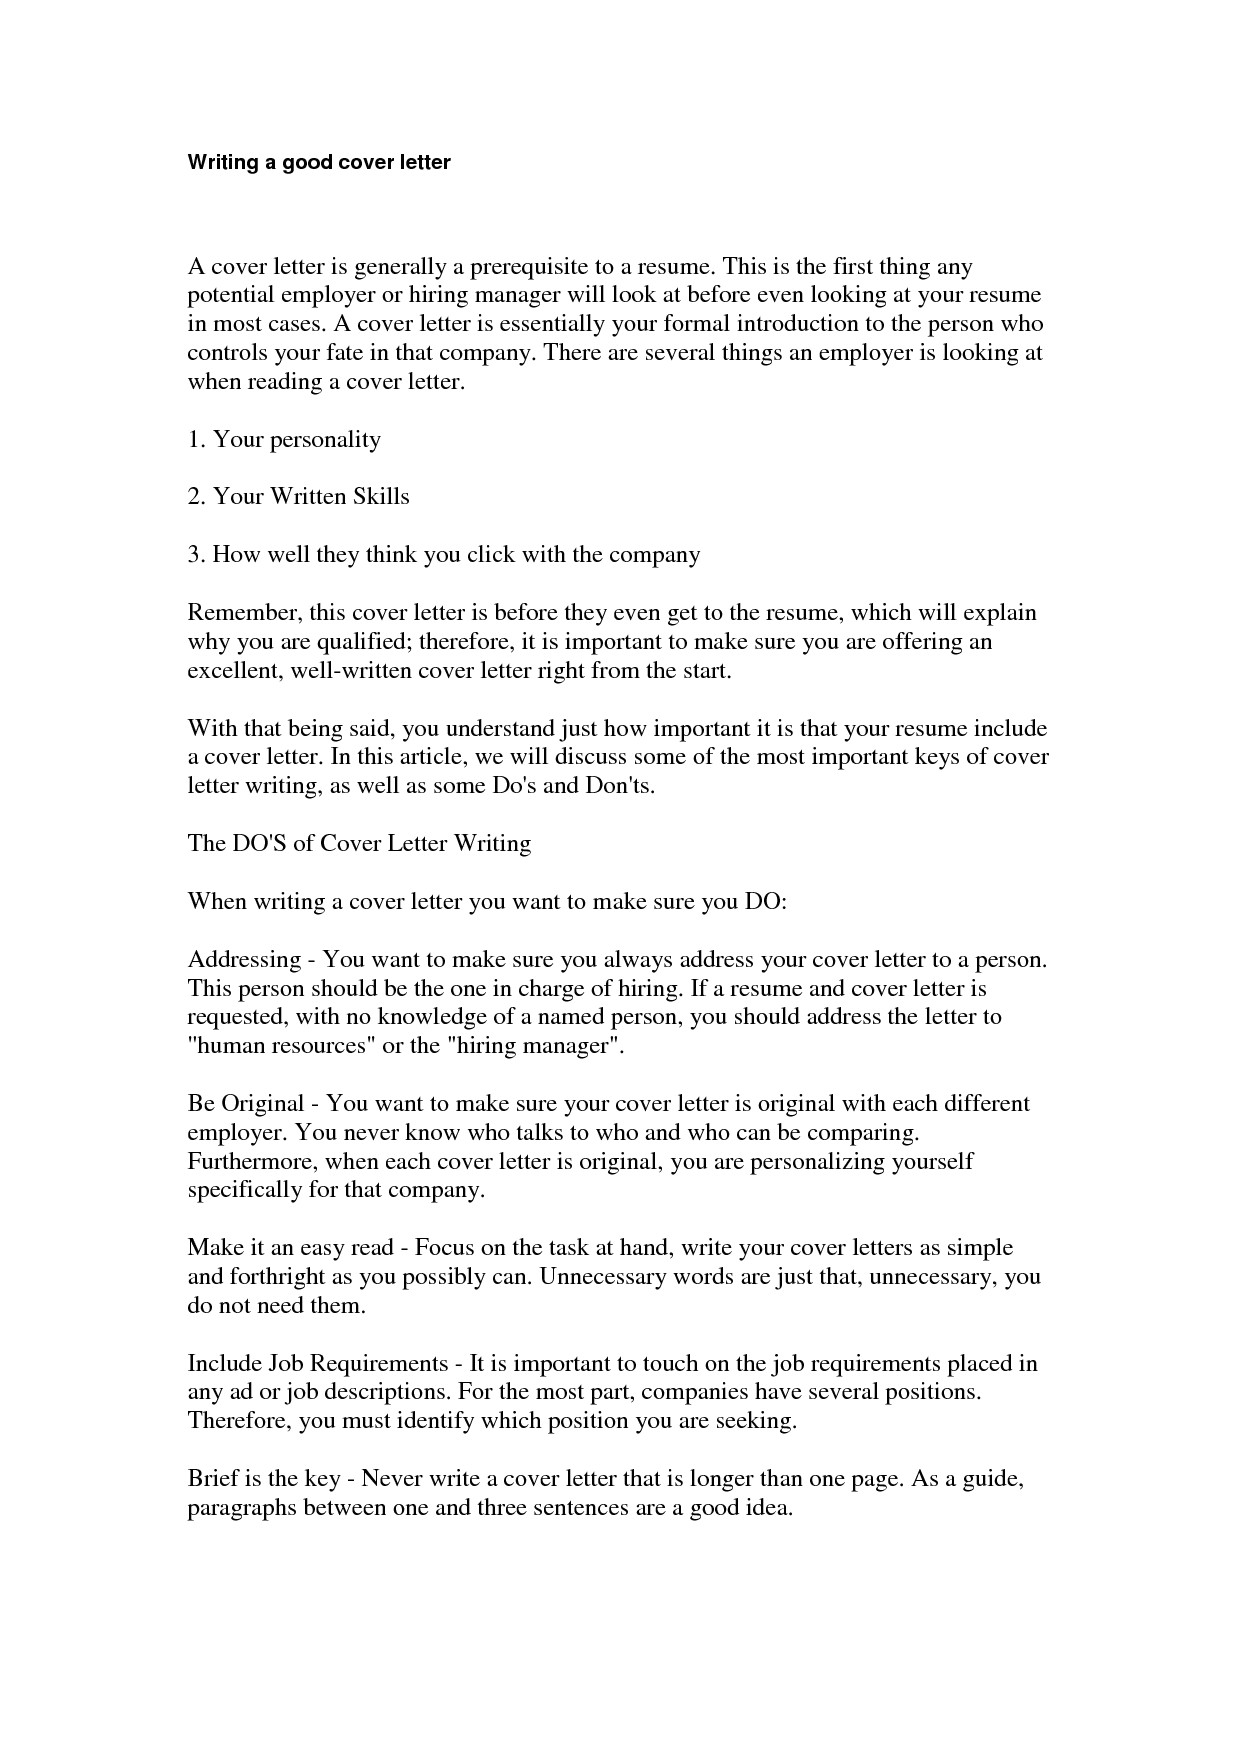 What Should Be Written In A Cover Letter Write A Good Cover Letter the Letter Sample